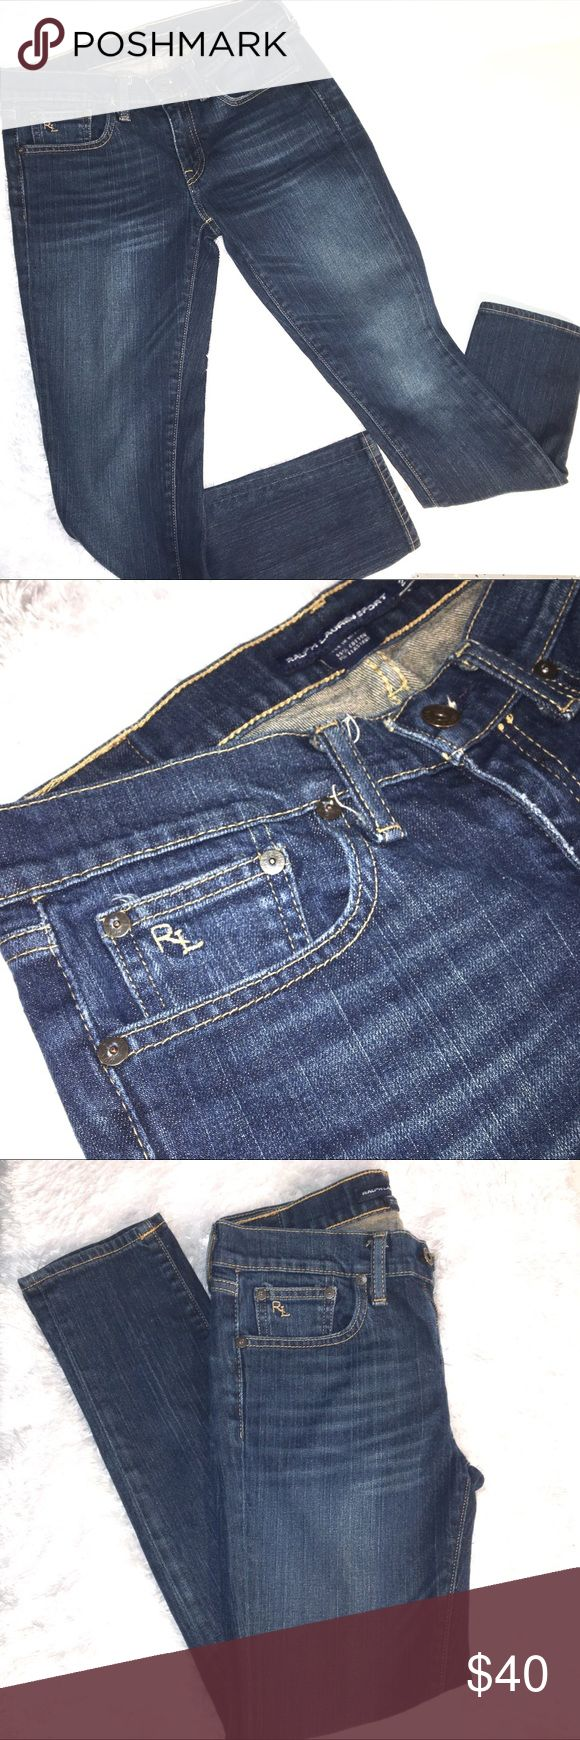 Women's Ralph Lauren Sport skinny denim jeans Women's Ralph Lauren Sport blue label denim slim skinny jeans. Size 27. Front and back pockets, dark wash, Label on front pocket & button. EUC, no damage or stains. Smoke free home. Pair with booties for fall. Wear to school, work, errands, casual or for date night. Great versatile denim Jean. #ralphlauren #sport #bluelabel #denim #jean #27 #skinny #blue ❌no trades❌ Ralph Lauren Blue Label Jeans Skinny